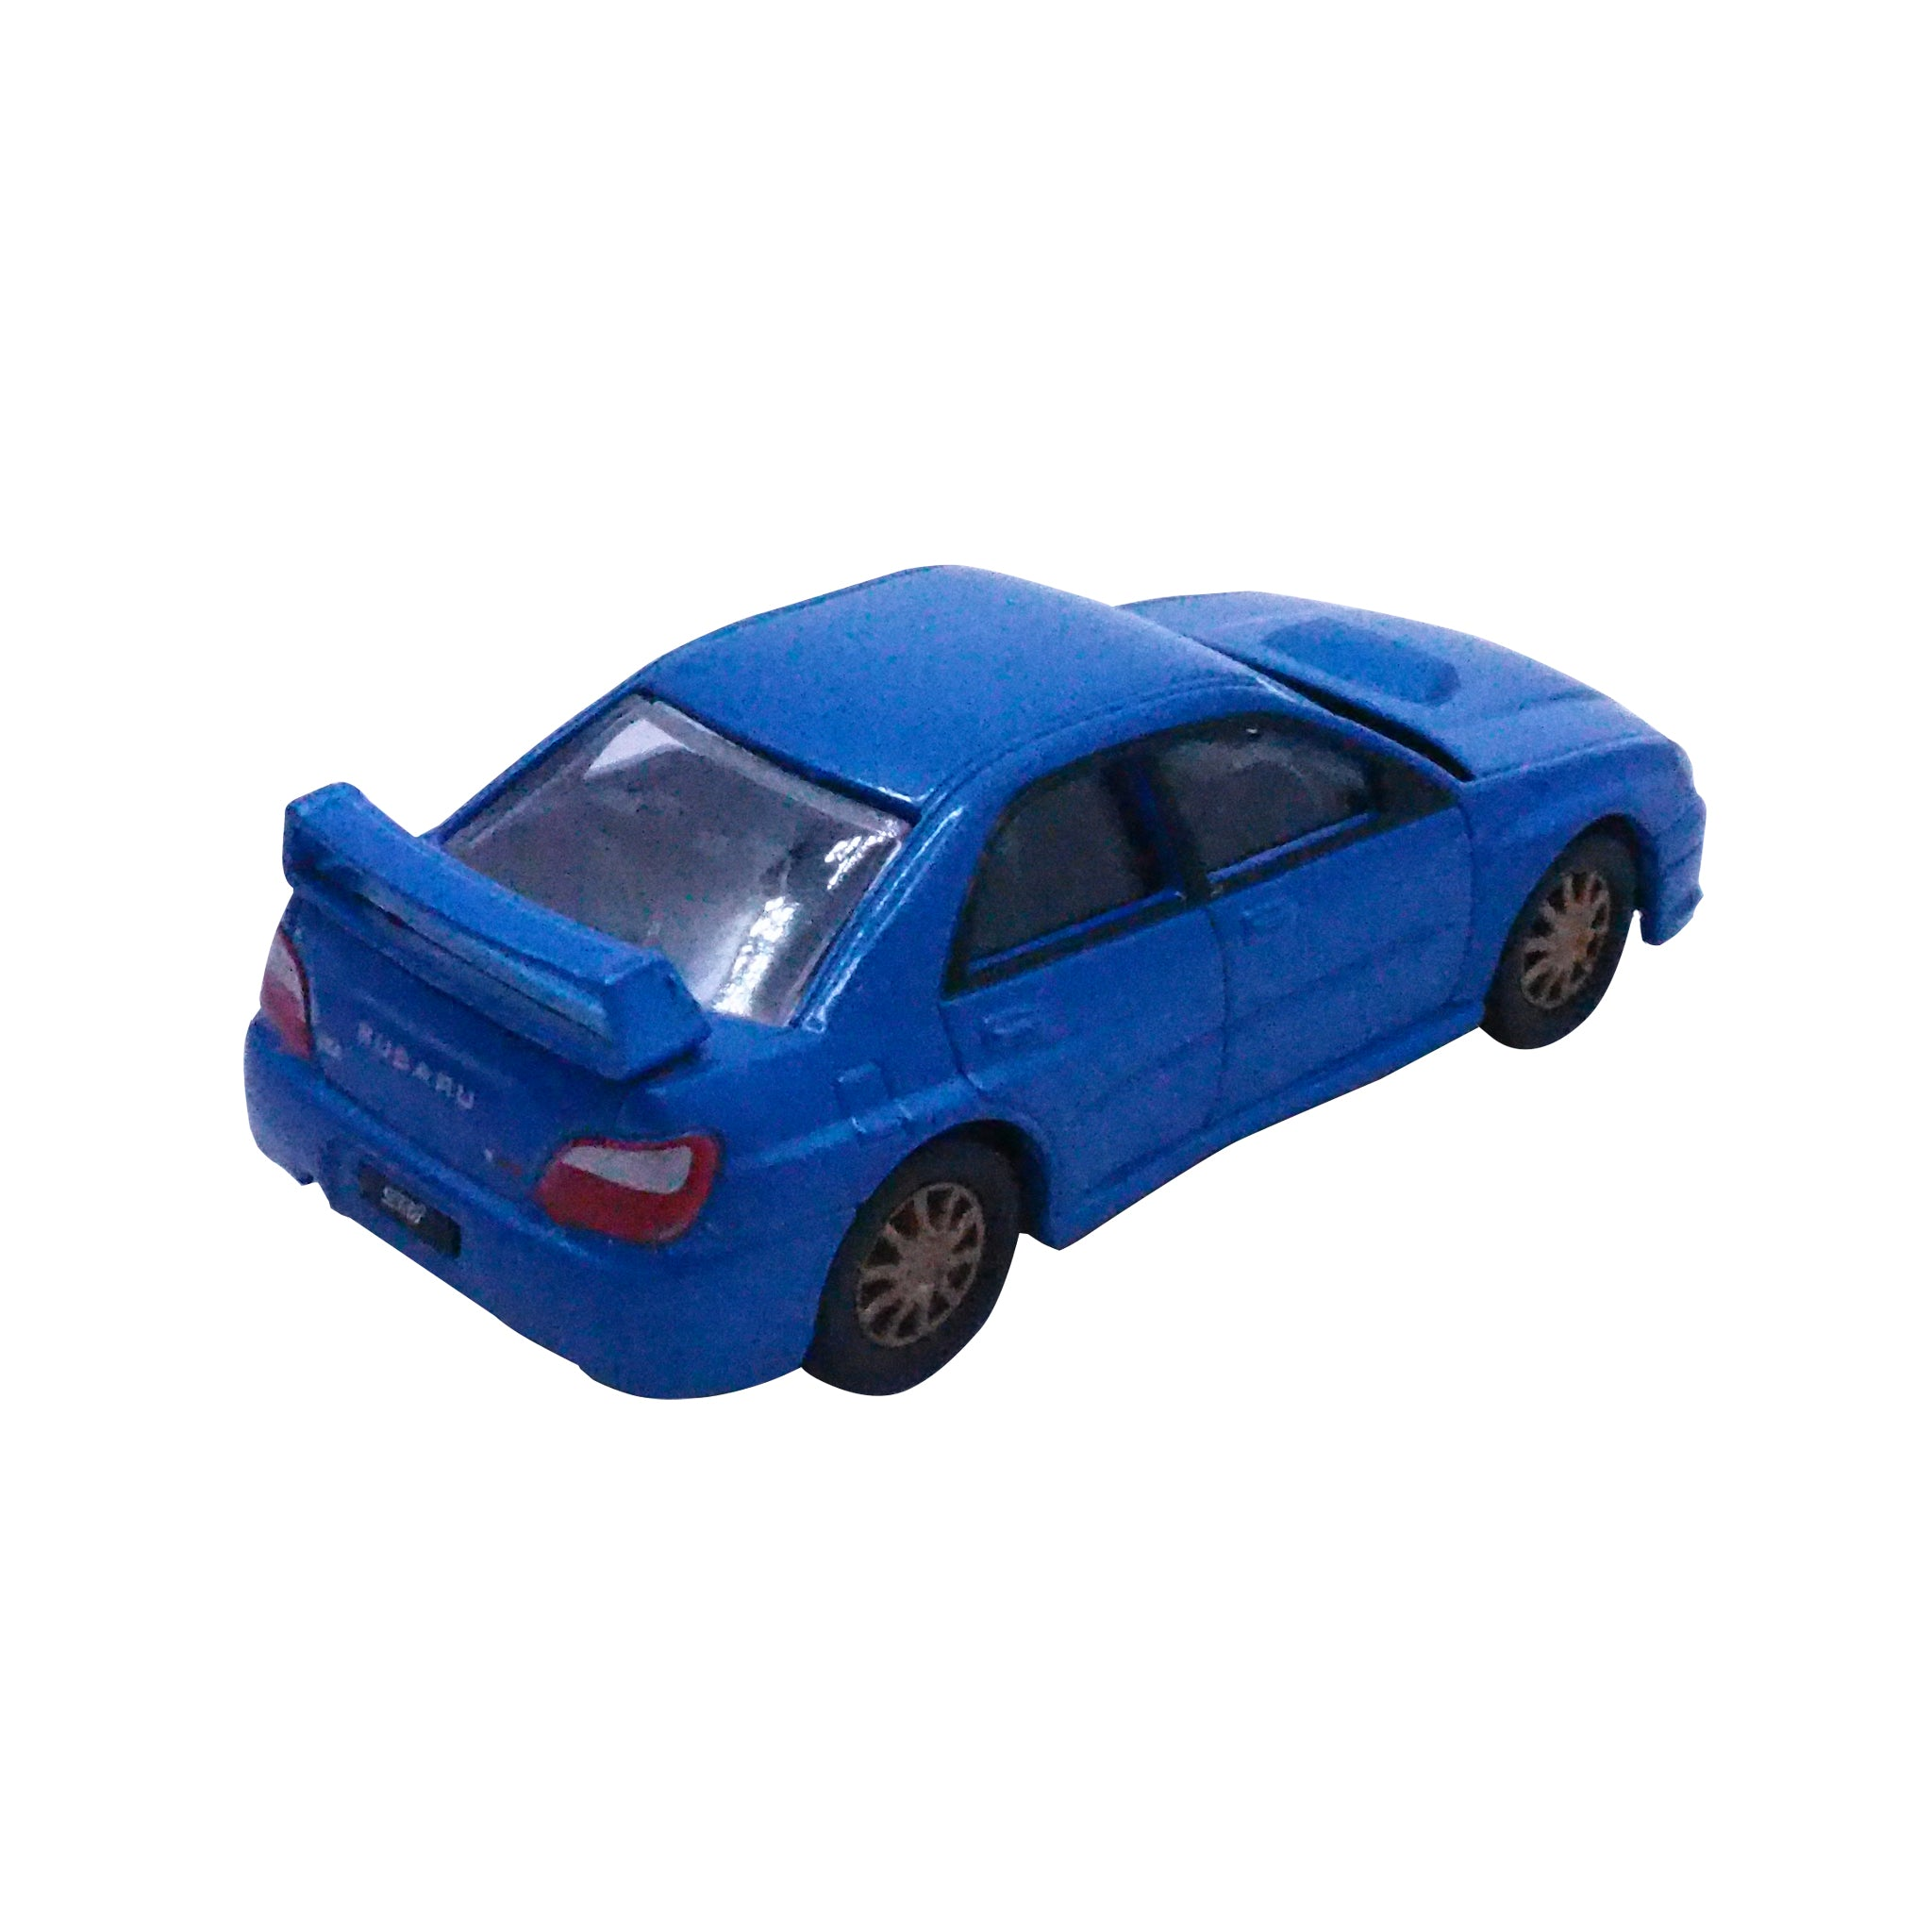 Subaru STI Diecast Model Car 2003